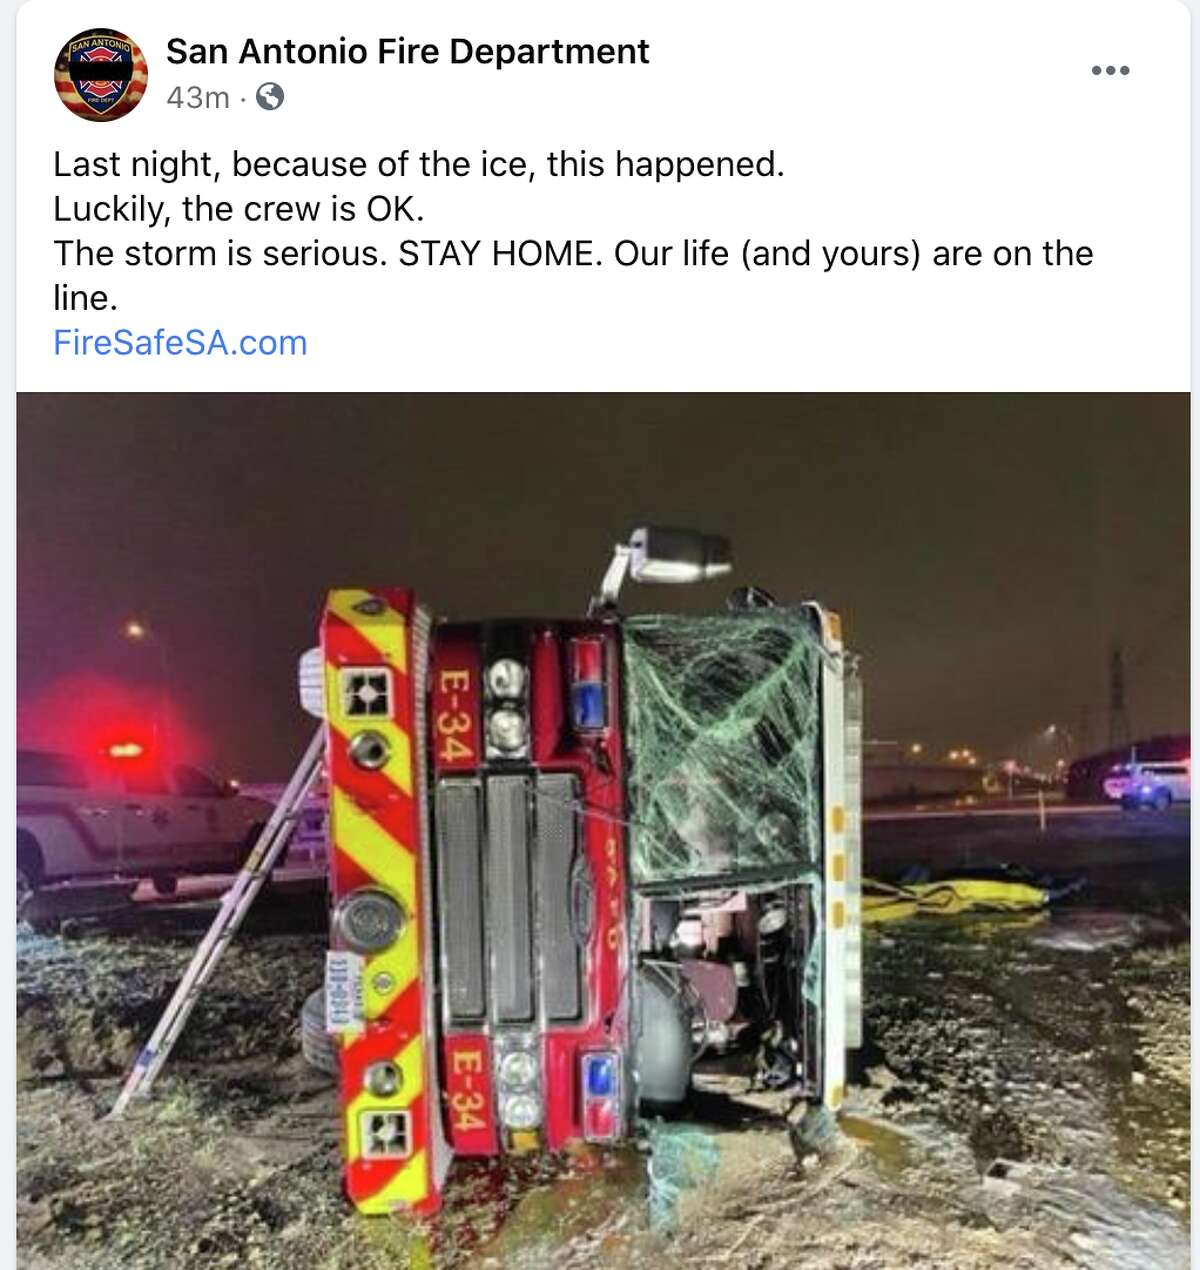 The San Antonio Fire Department shared the image of the truck that slid into an embankment.